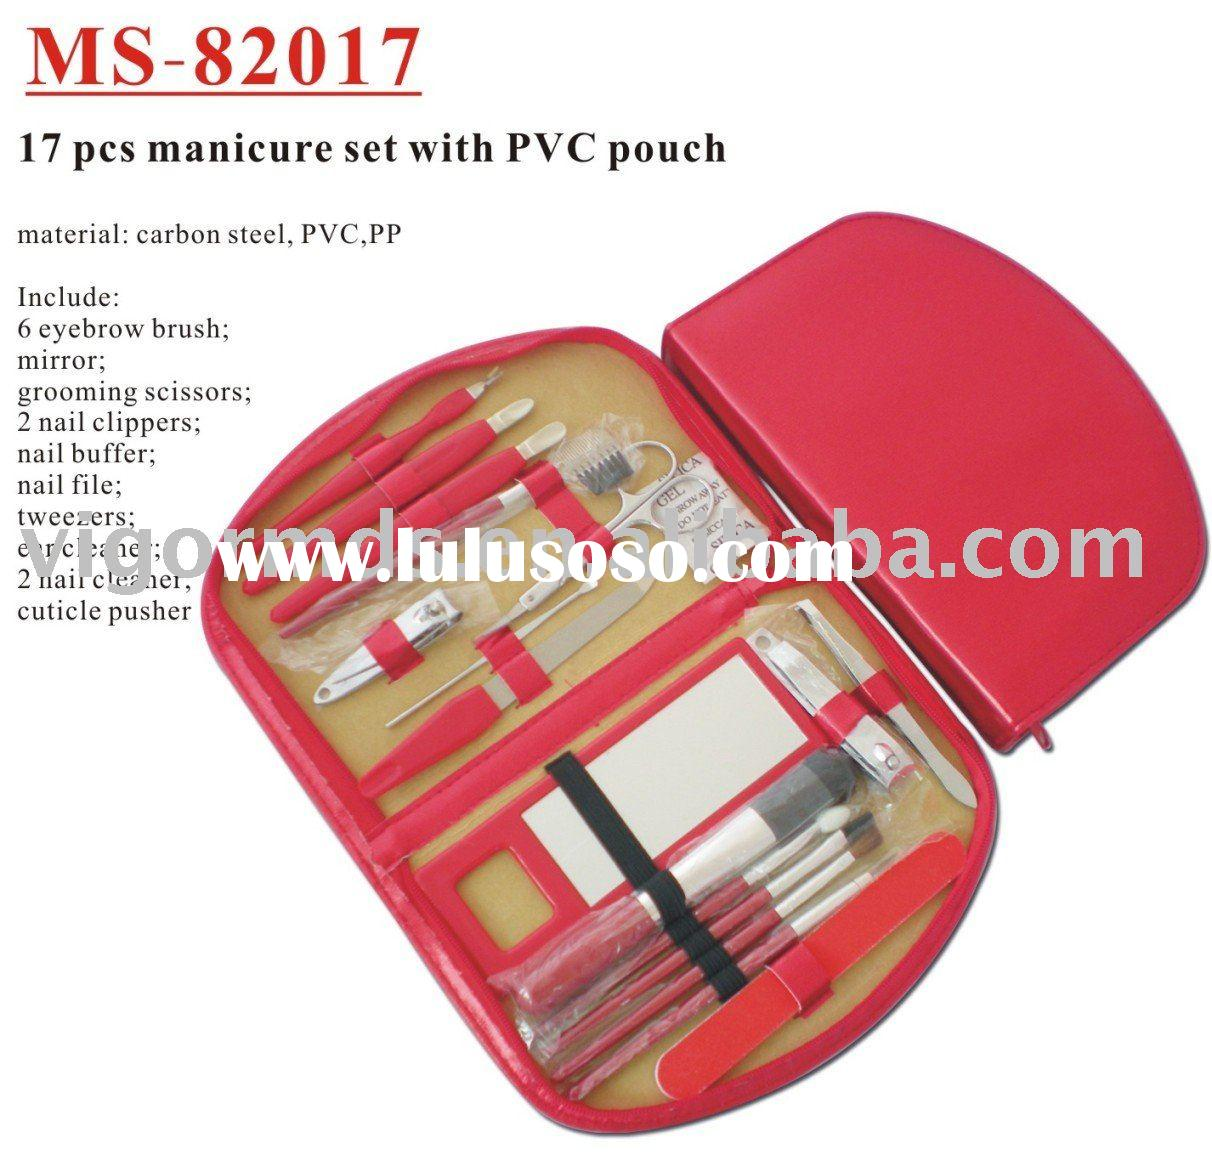 (MS-82017) 17 Pcs Manicure Set /Pedicure Set with PVC Pouch